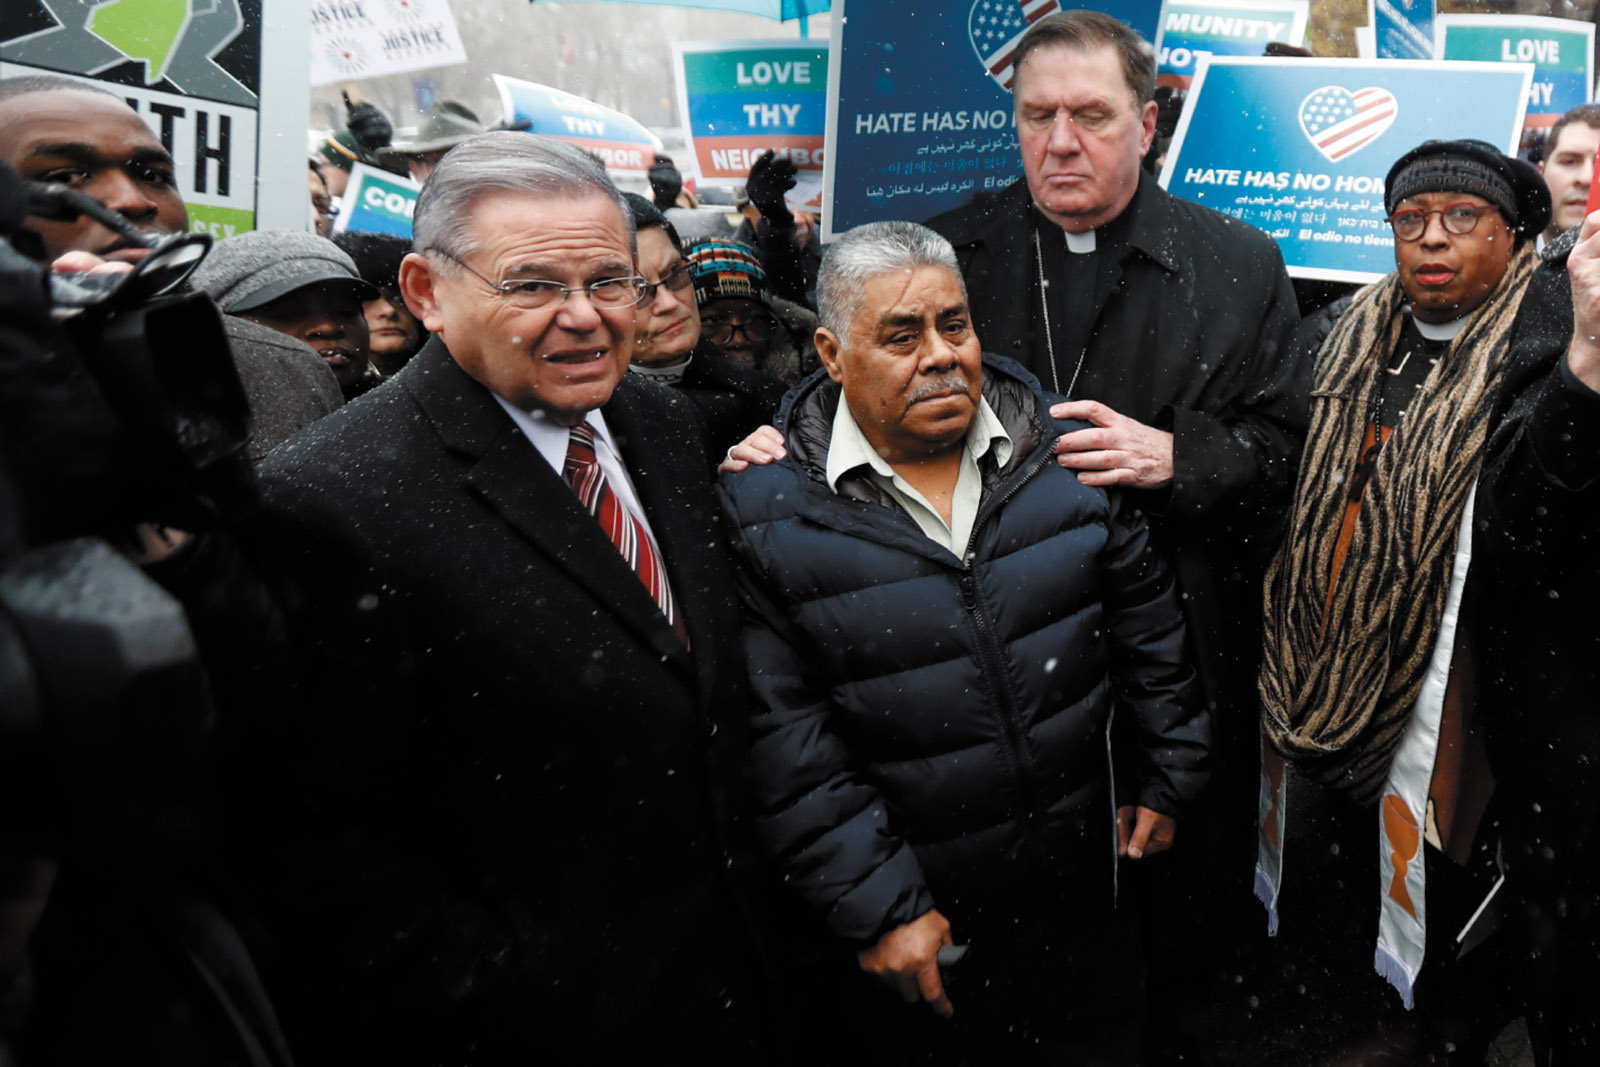 Catalino Guerrero (center), a New Jersey resident who is facing possible deportation to Mexico, with Senator Robert Menendez and Cardinal Joseph Tobin, archbishop of Newark, at a rally before an immigration hearing, Newark, March 2017